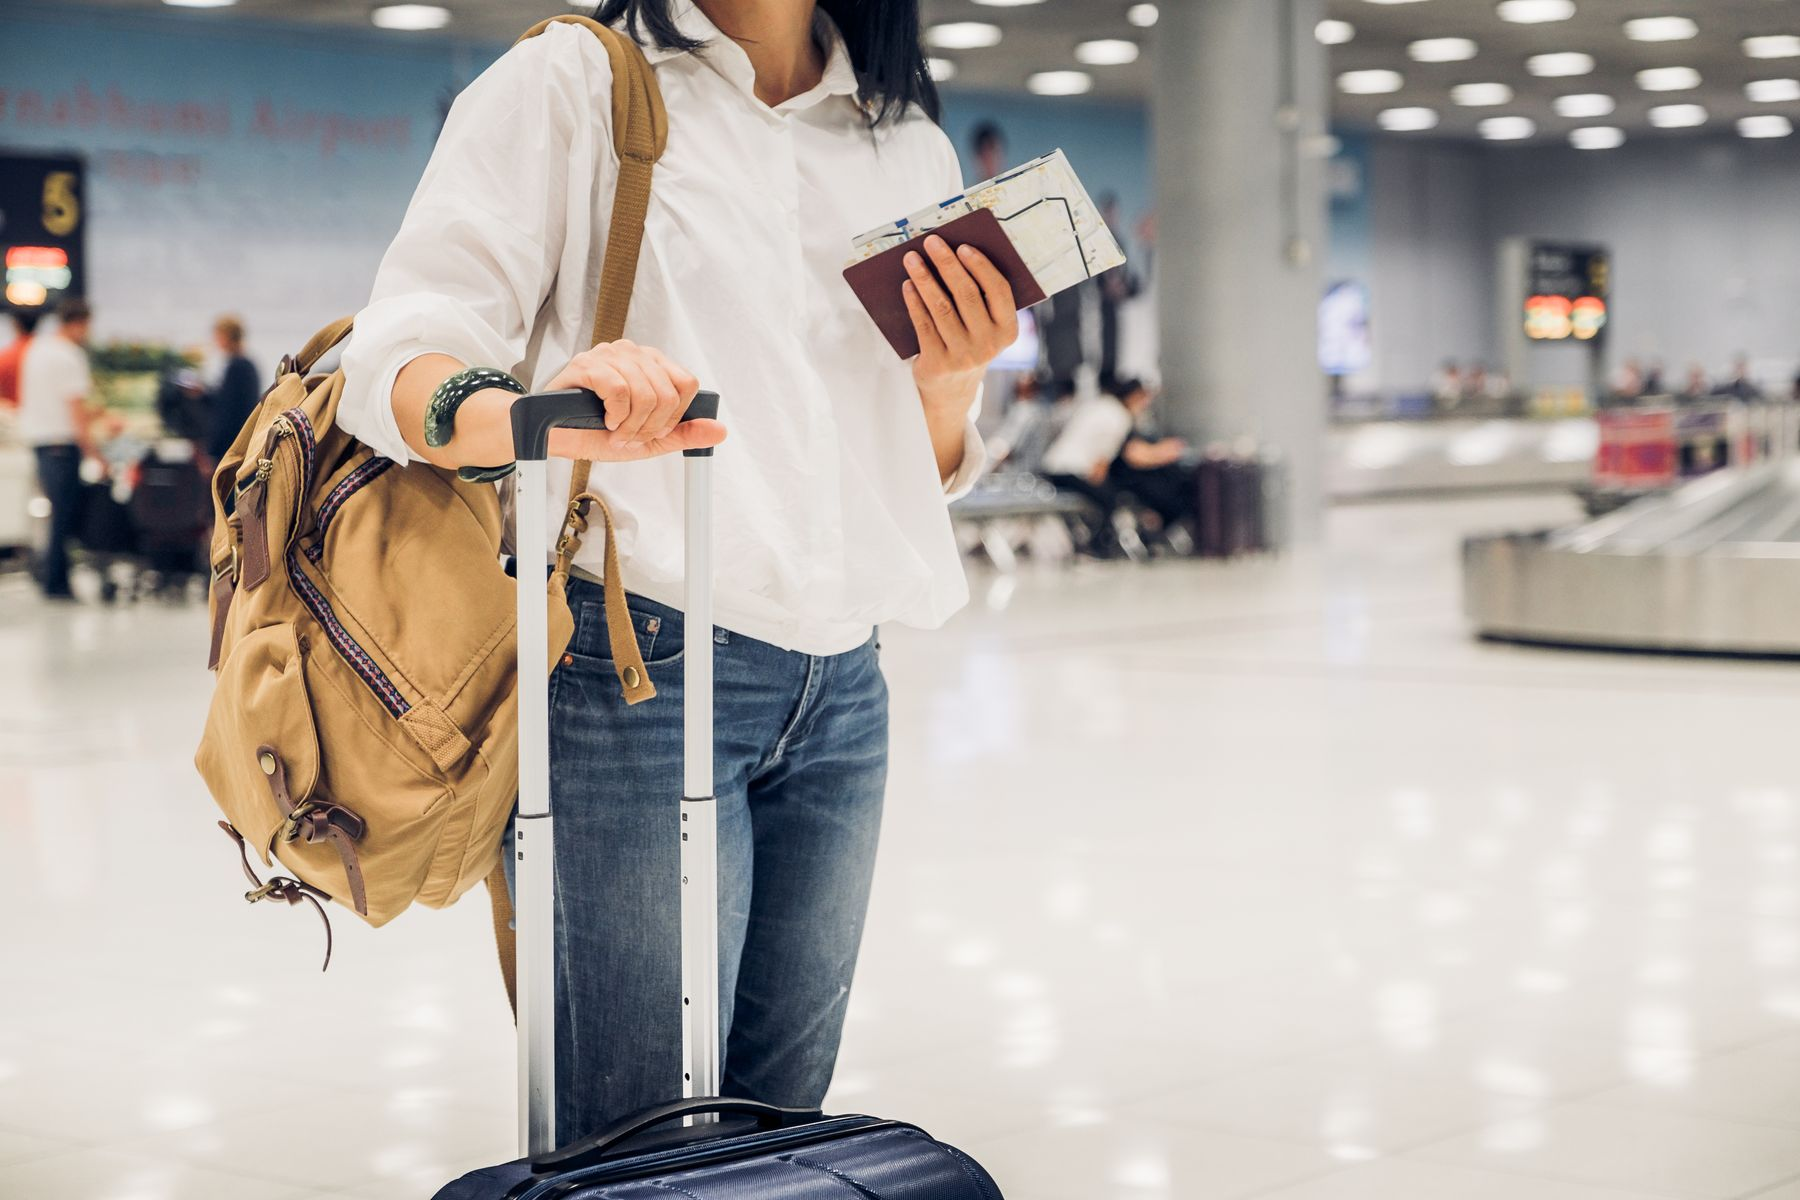 Woman standing with her suitcase handle in one hand, a canvas backpack slung over her shoulder, and her passport and ticket in the other hand